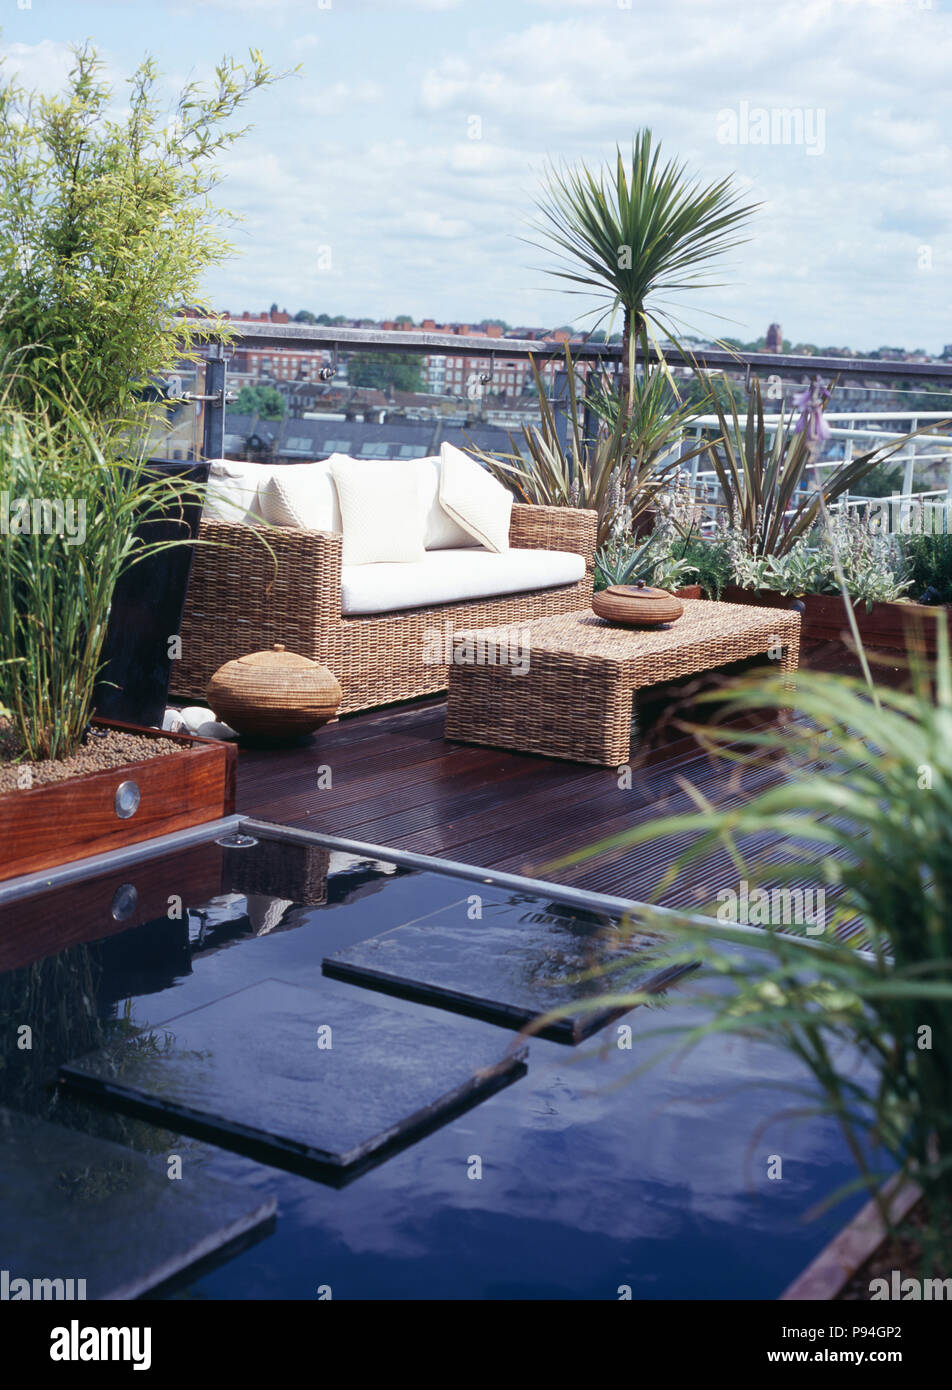 Paving Slabs Across Pool On Decked City Roof Garden With Seagrass Table And Matching Sofa With White Cushions Stock Photo Alamy